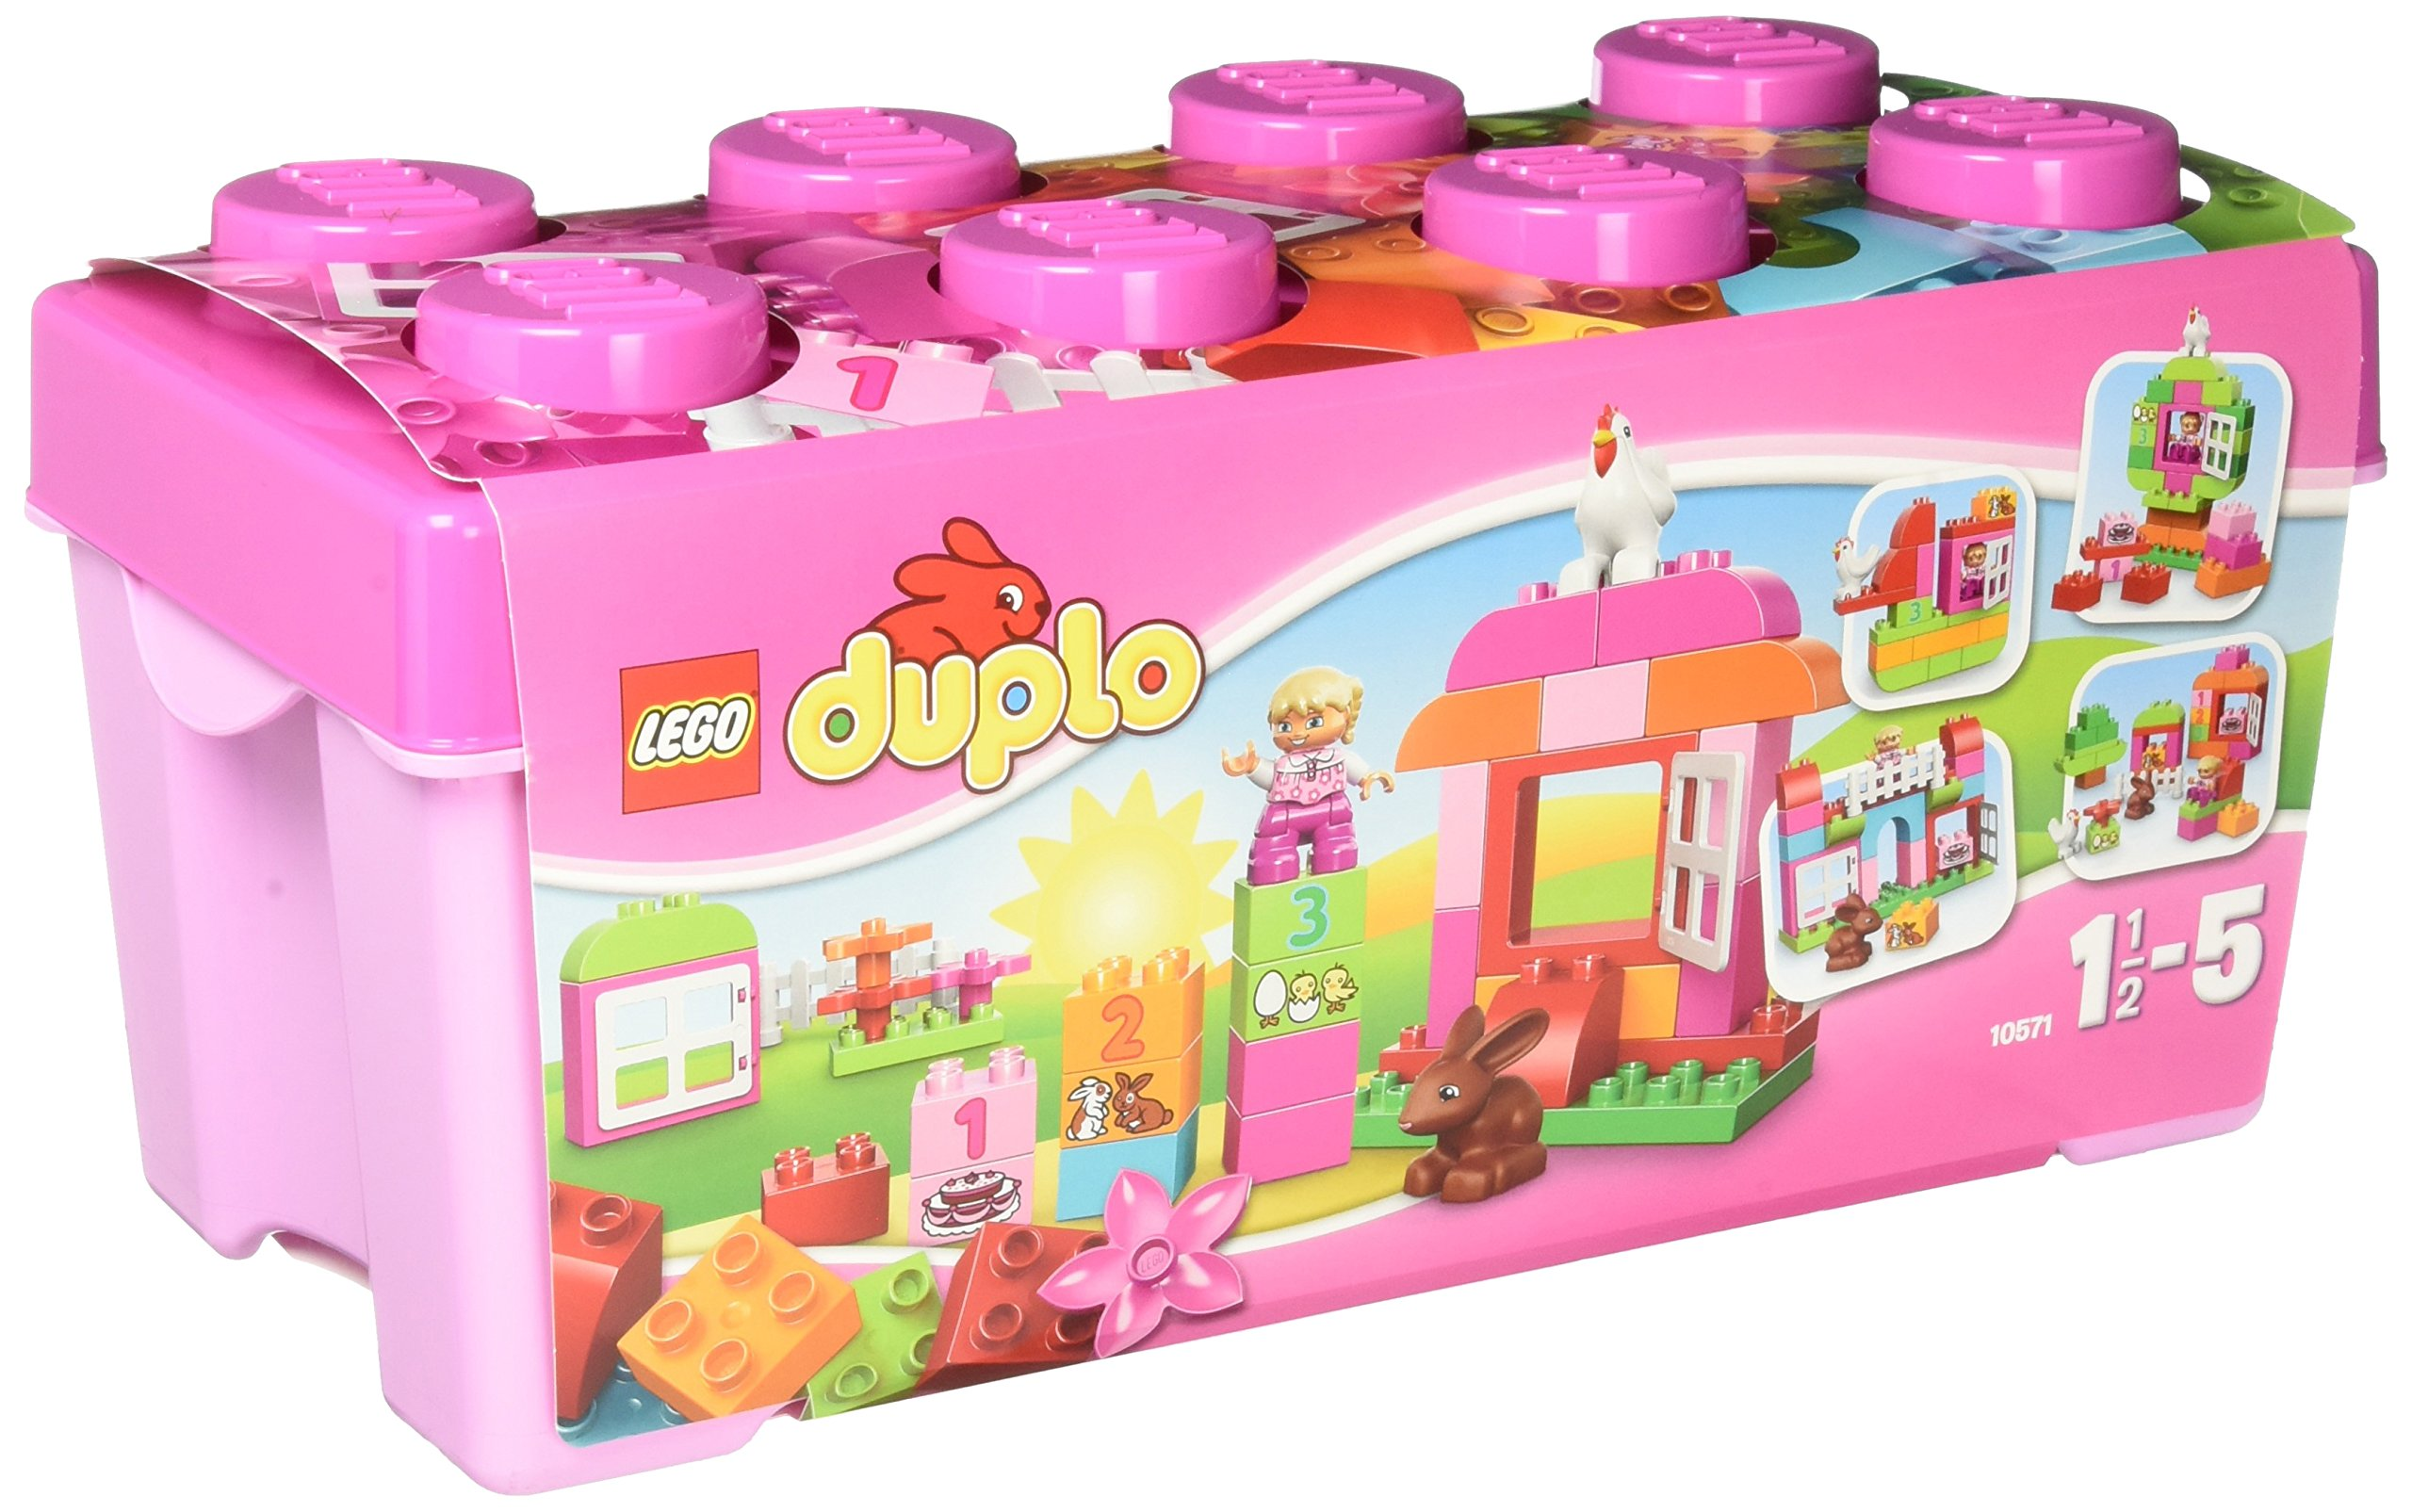 LEGO DUPLO Creative Play 10571: All-in-One-Box-of-Fun (Pink) Building Blocks